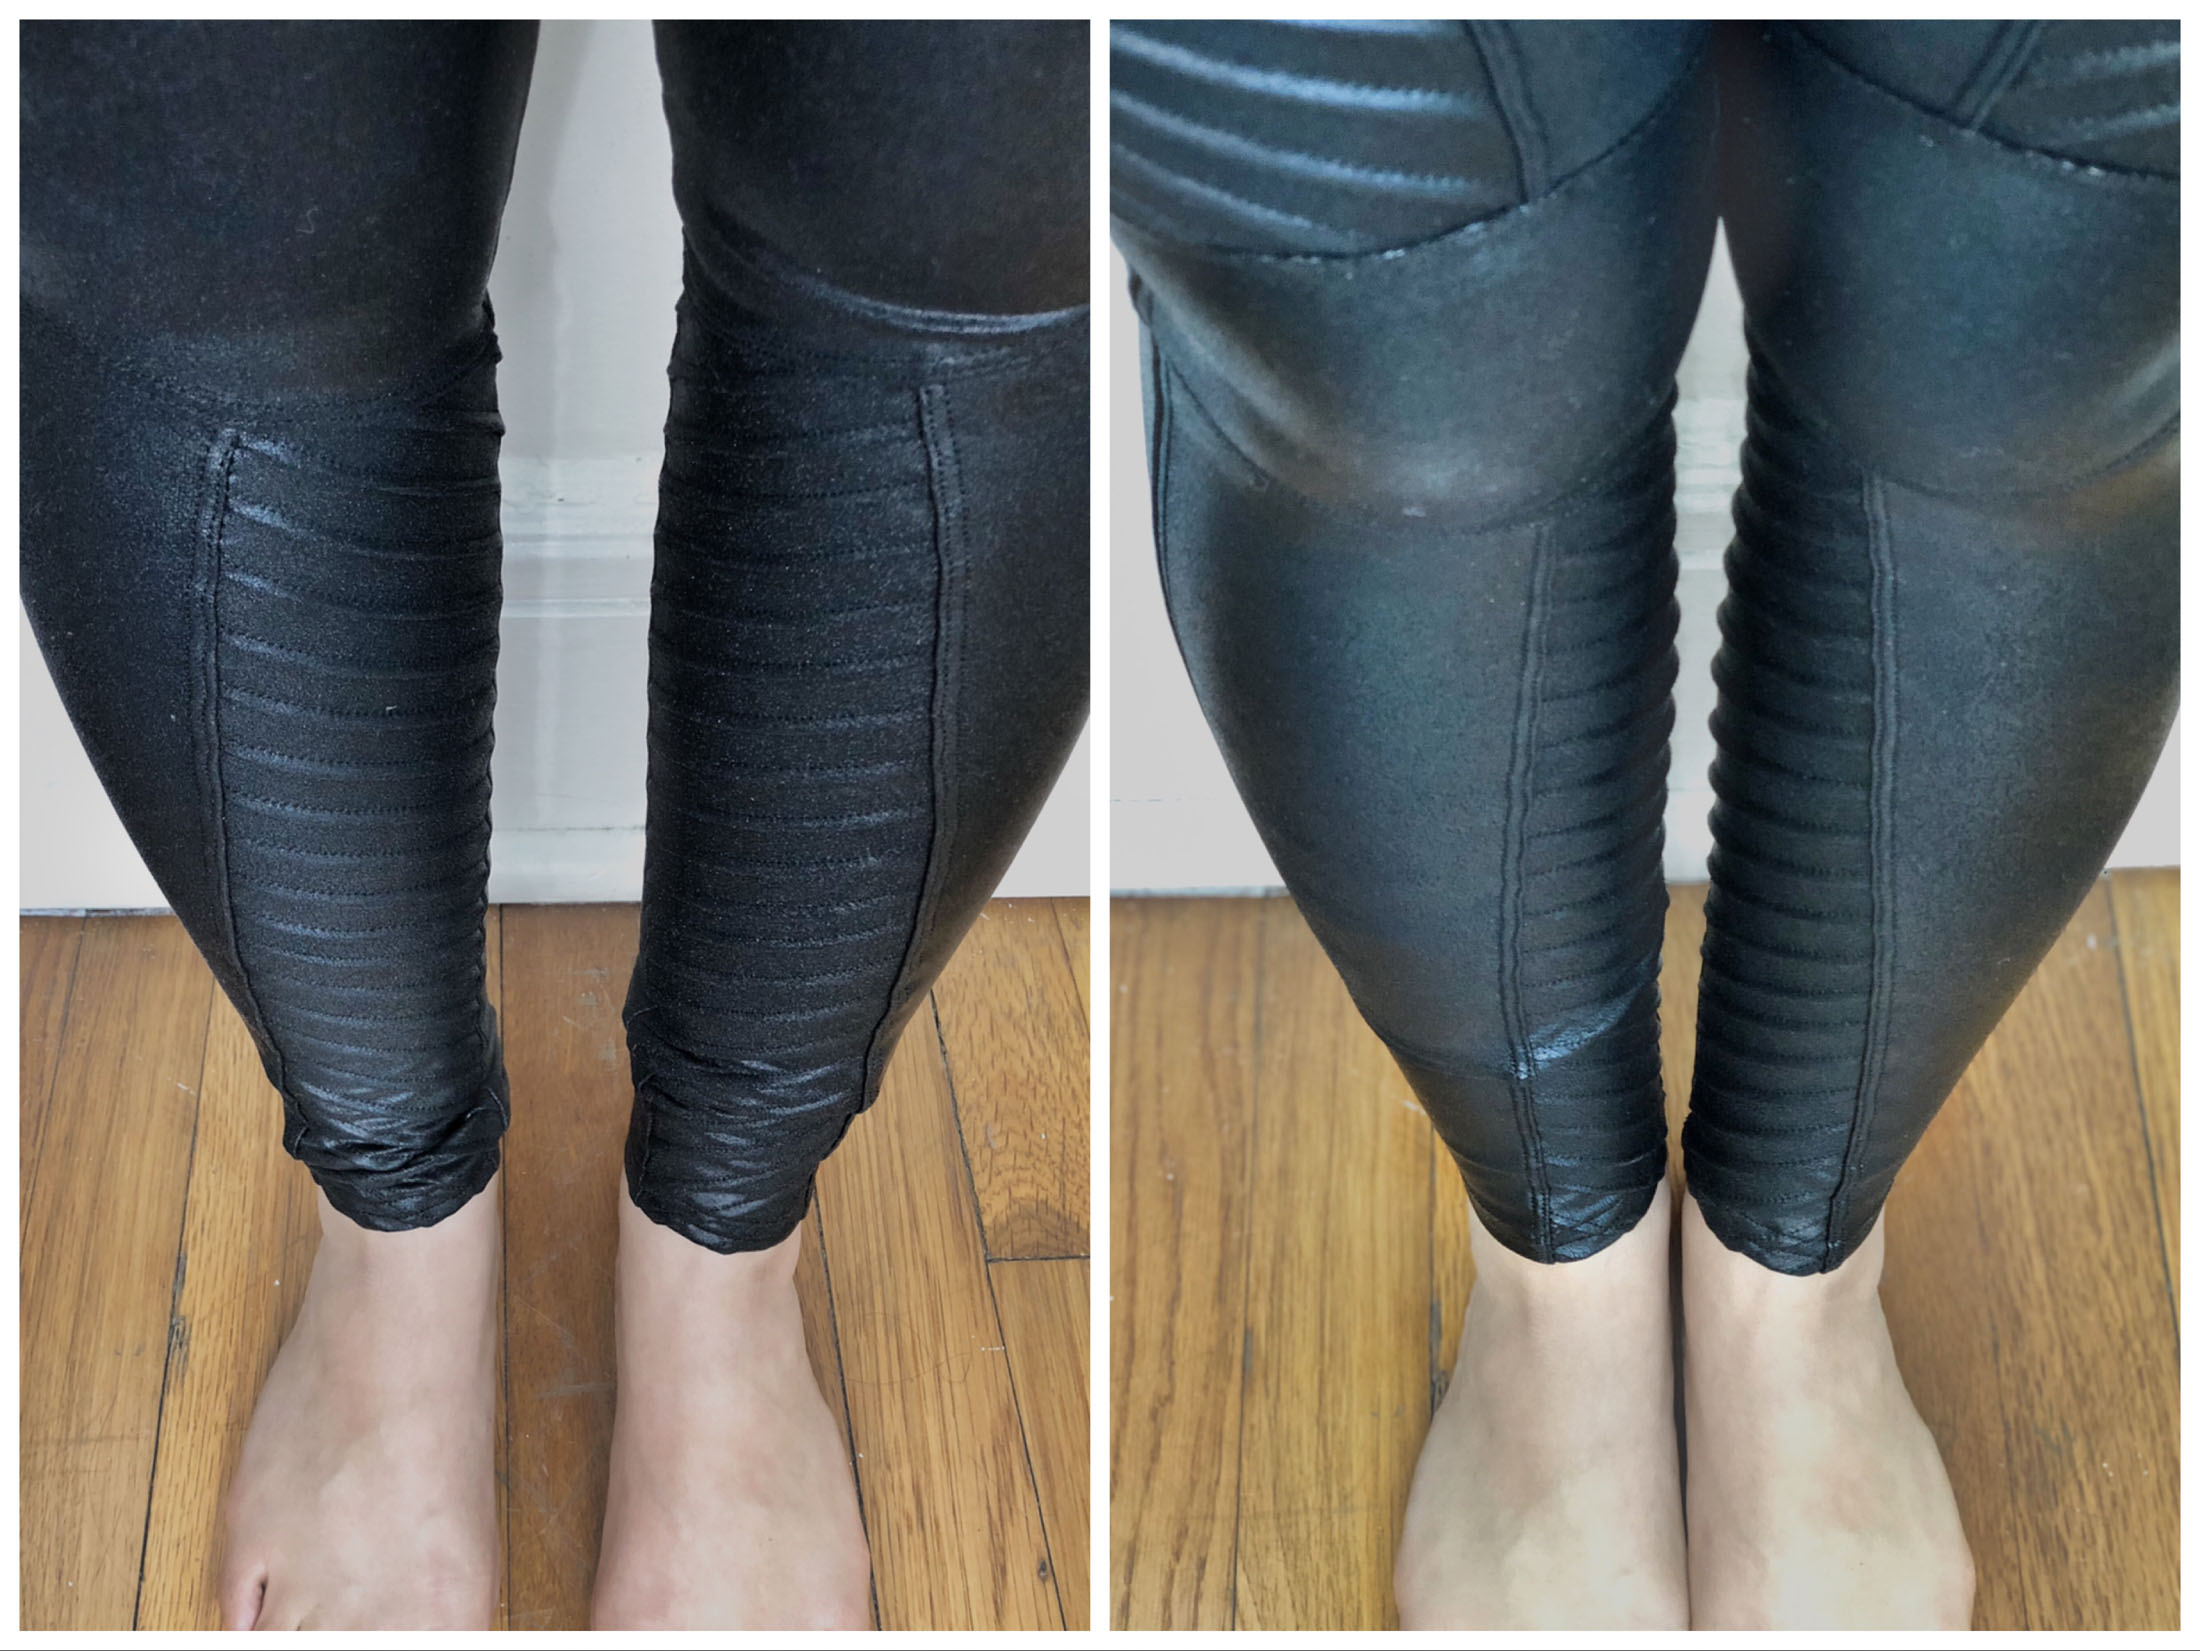 For the price, high-end leggings better be MAGIC. We're trying the Spanx faux leather leggings to see if they perform like the price tag. Pics inside.